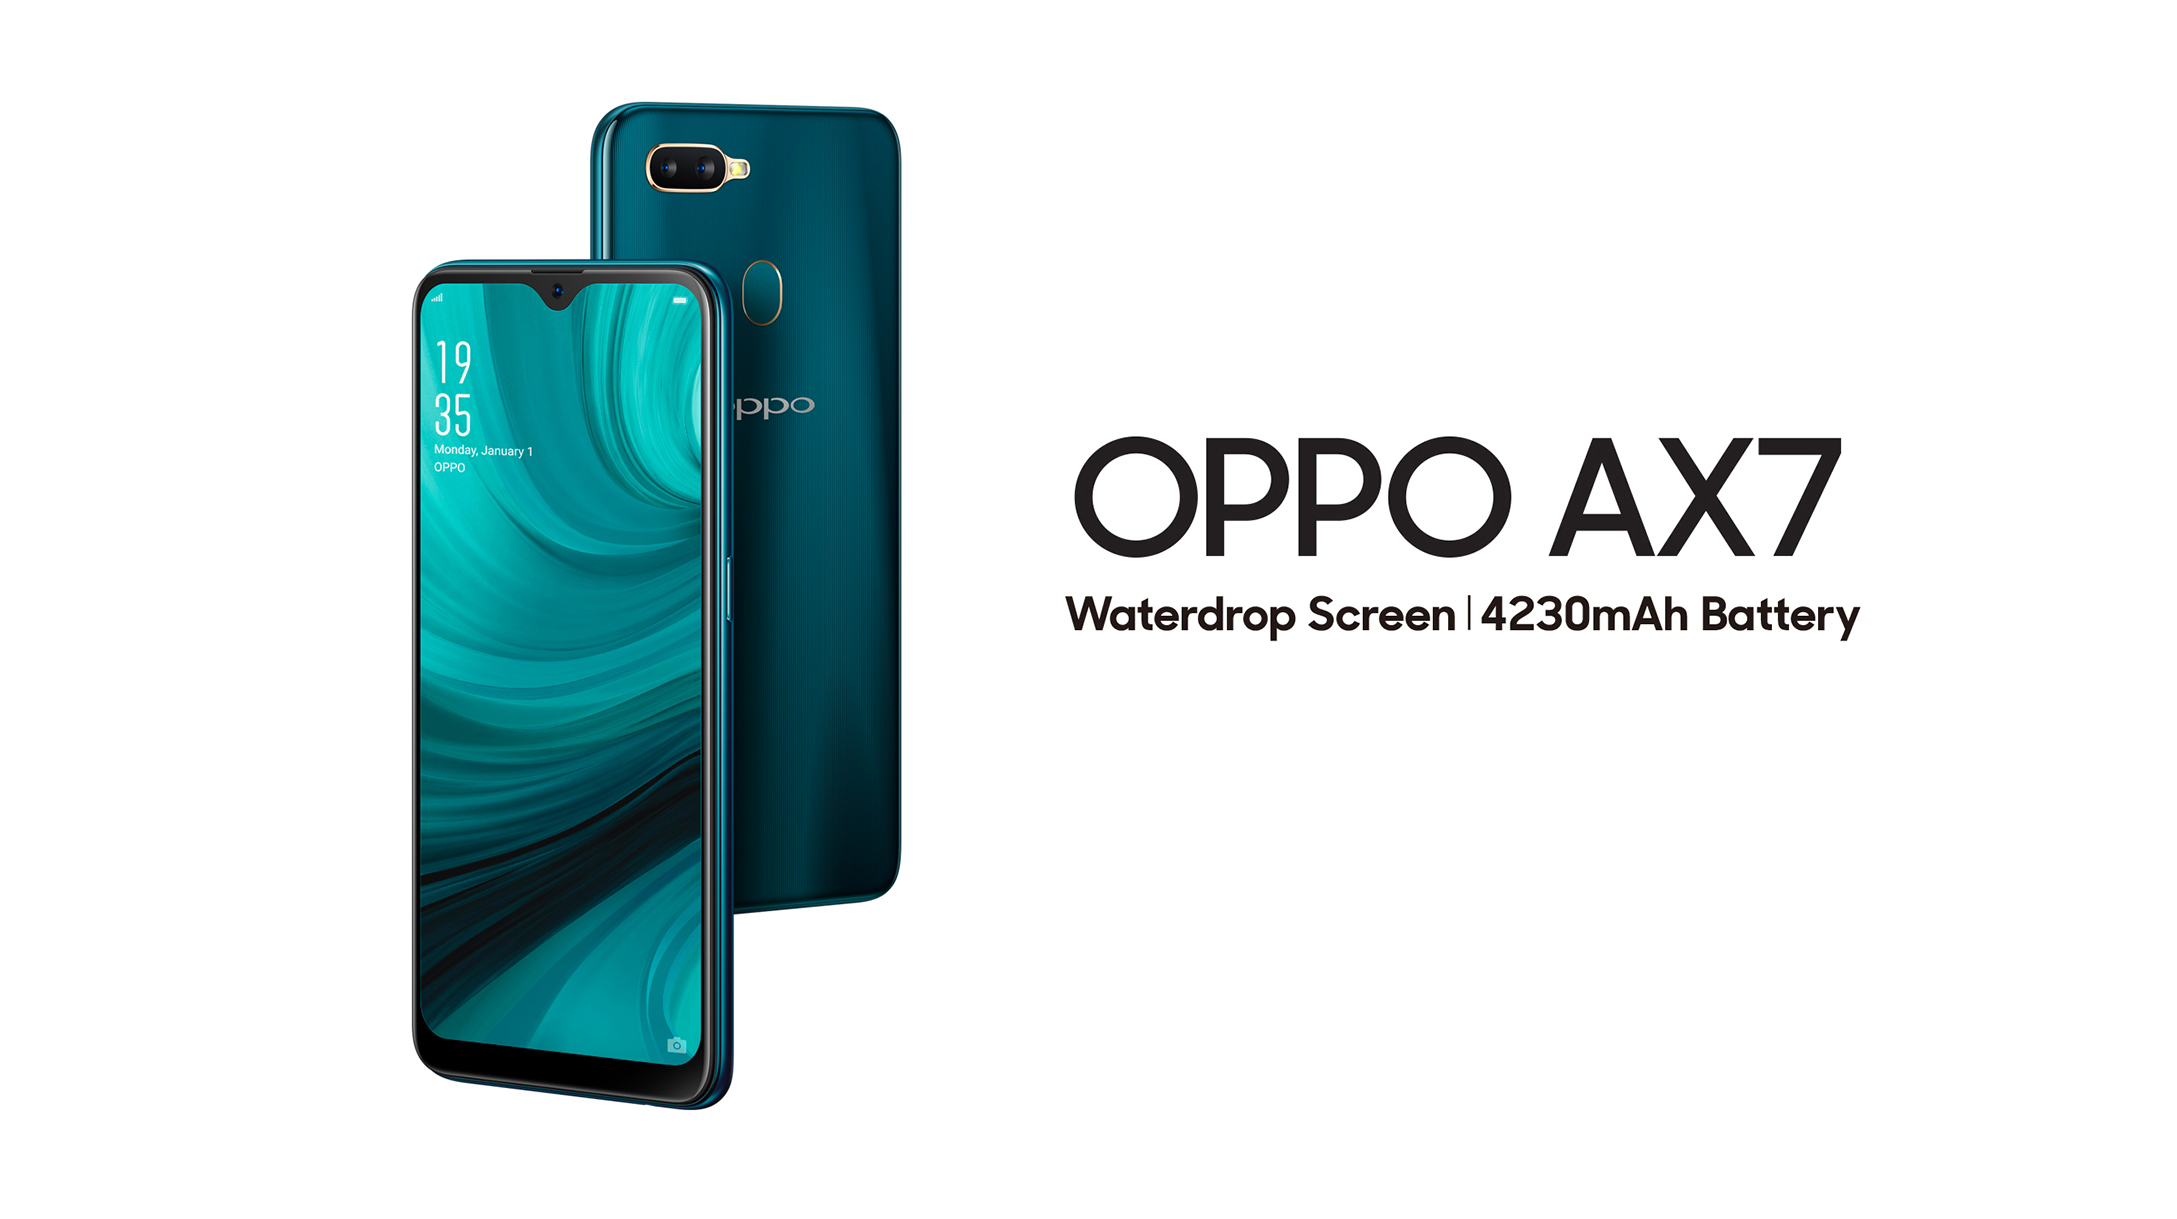 OPPO AX7 is the super full screen phone that redefines high-end design launching with Carphone Warehouse on 10th April